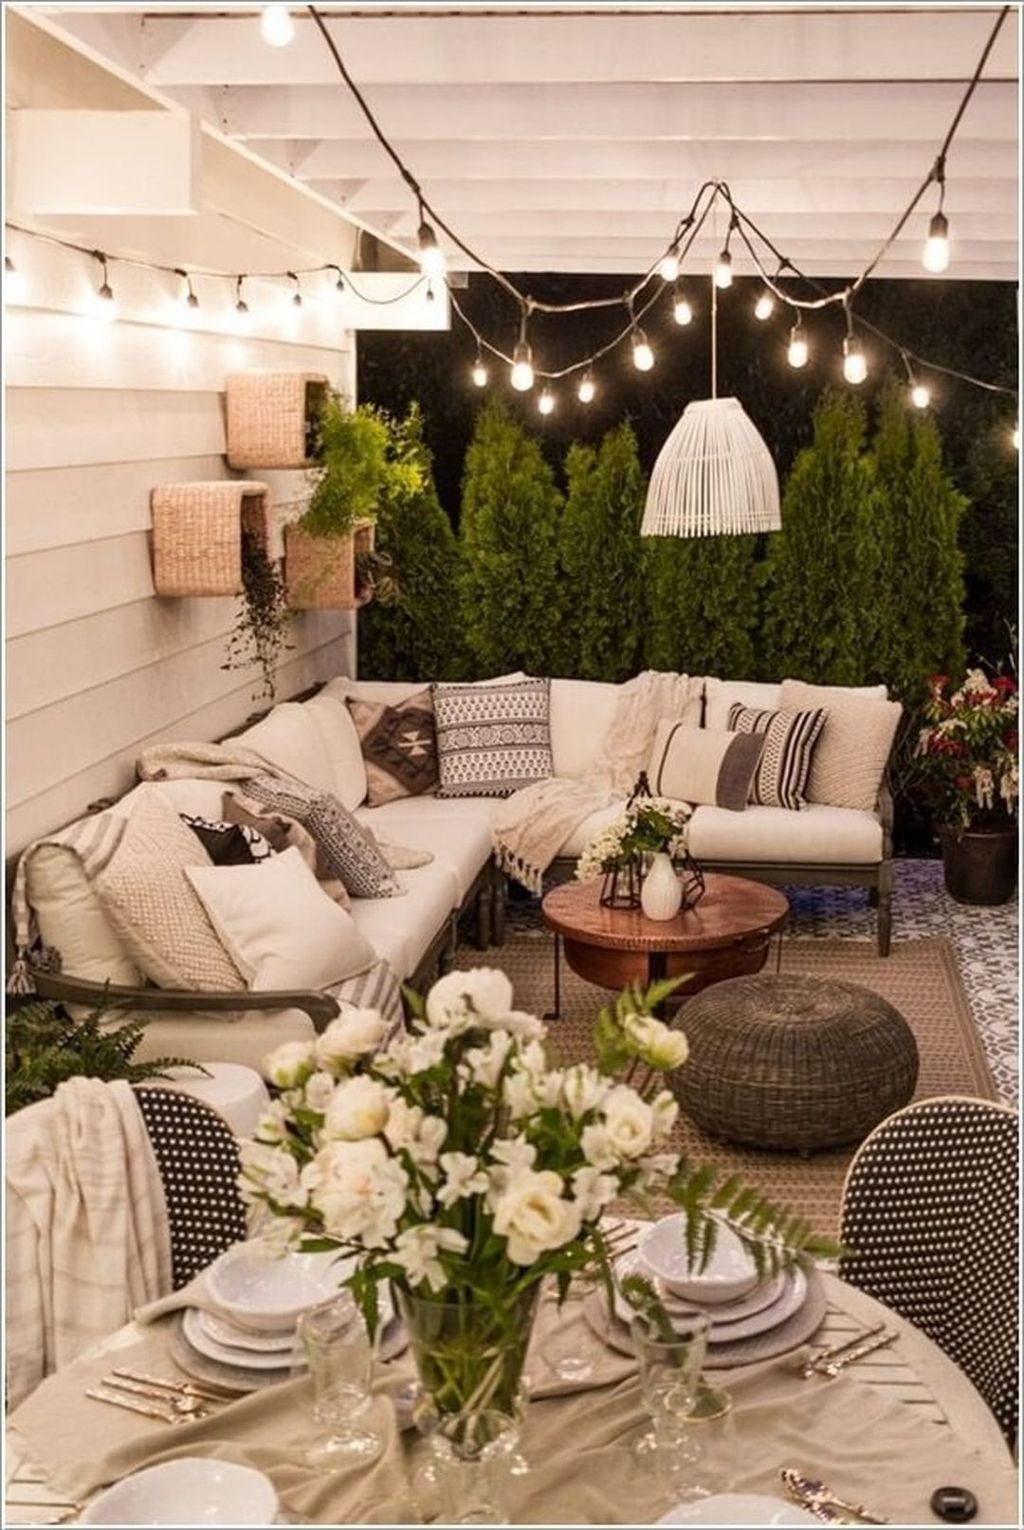 Stunning Rustic Patio Decorating Ideas 04